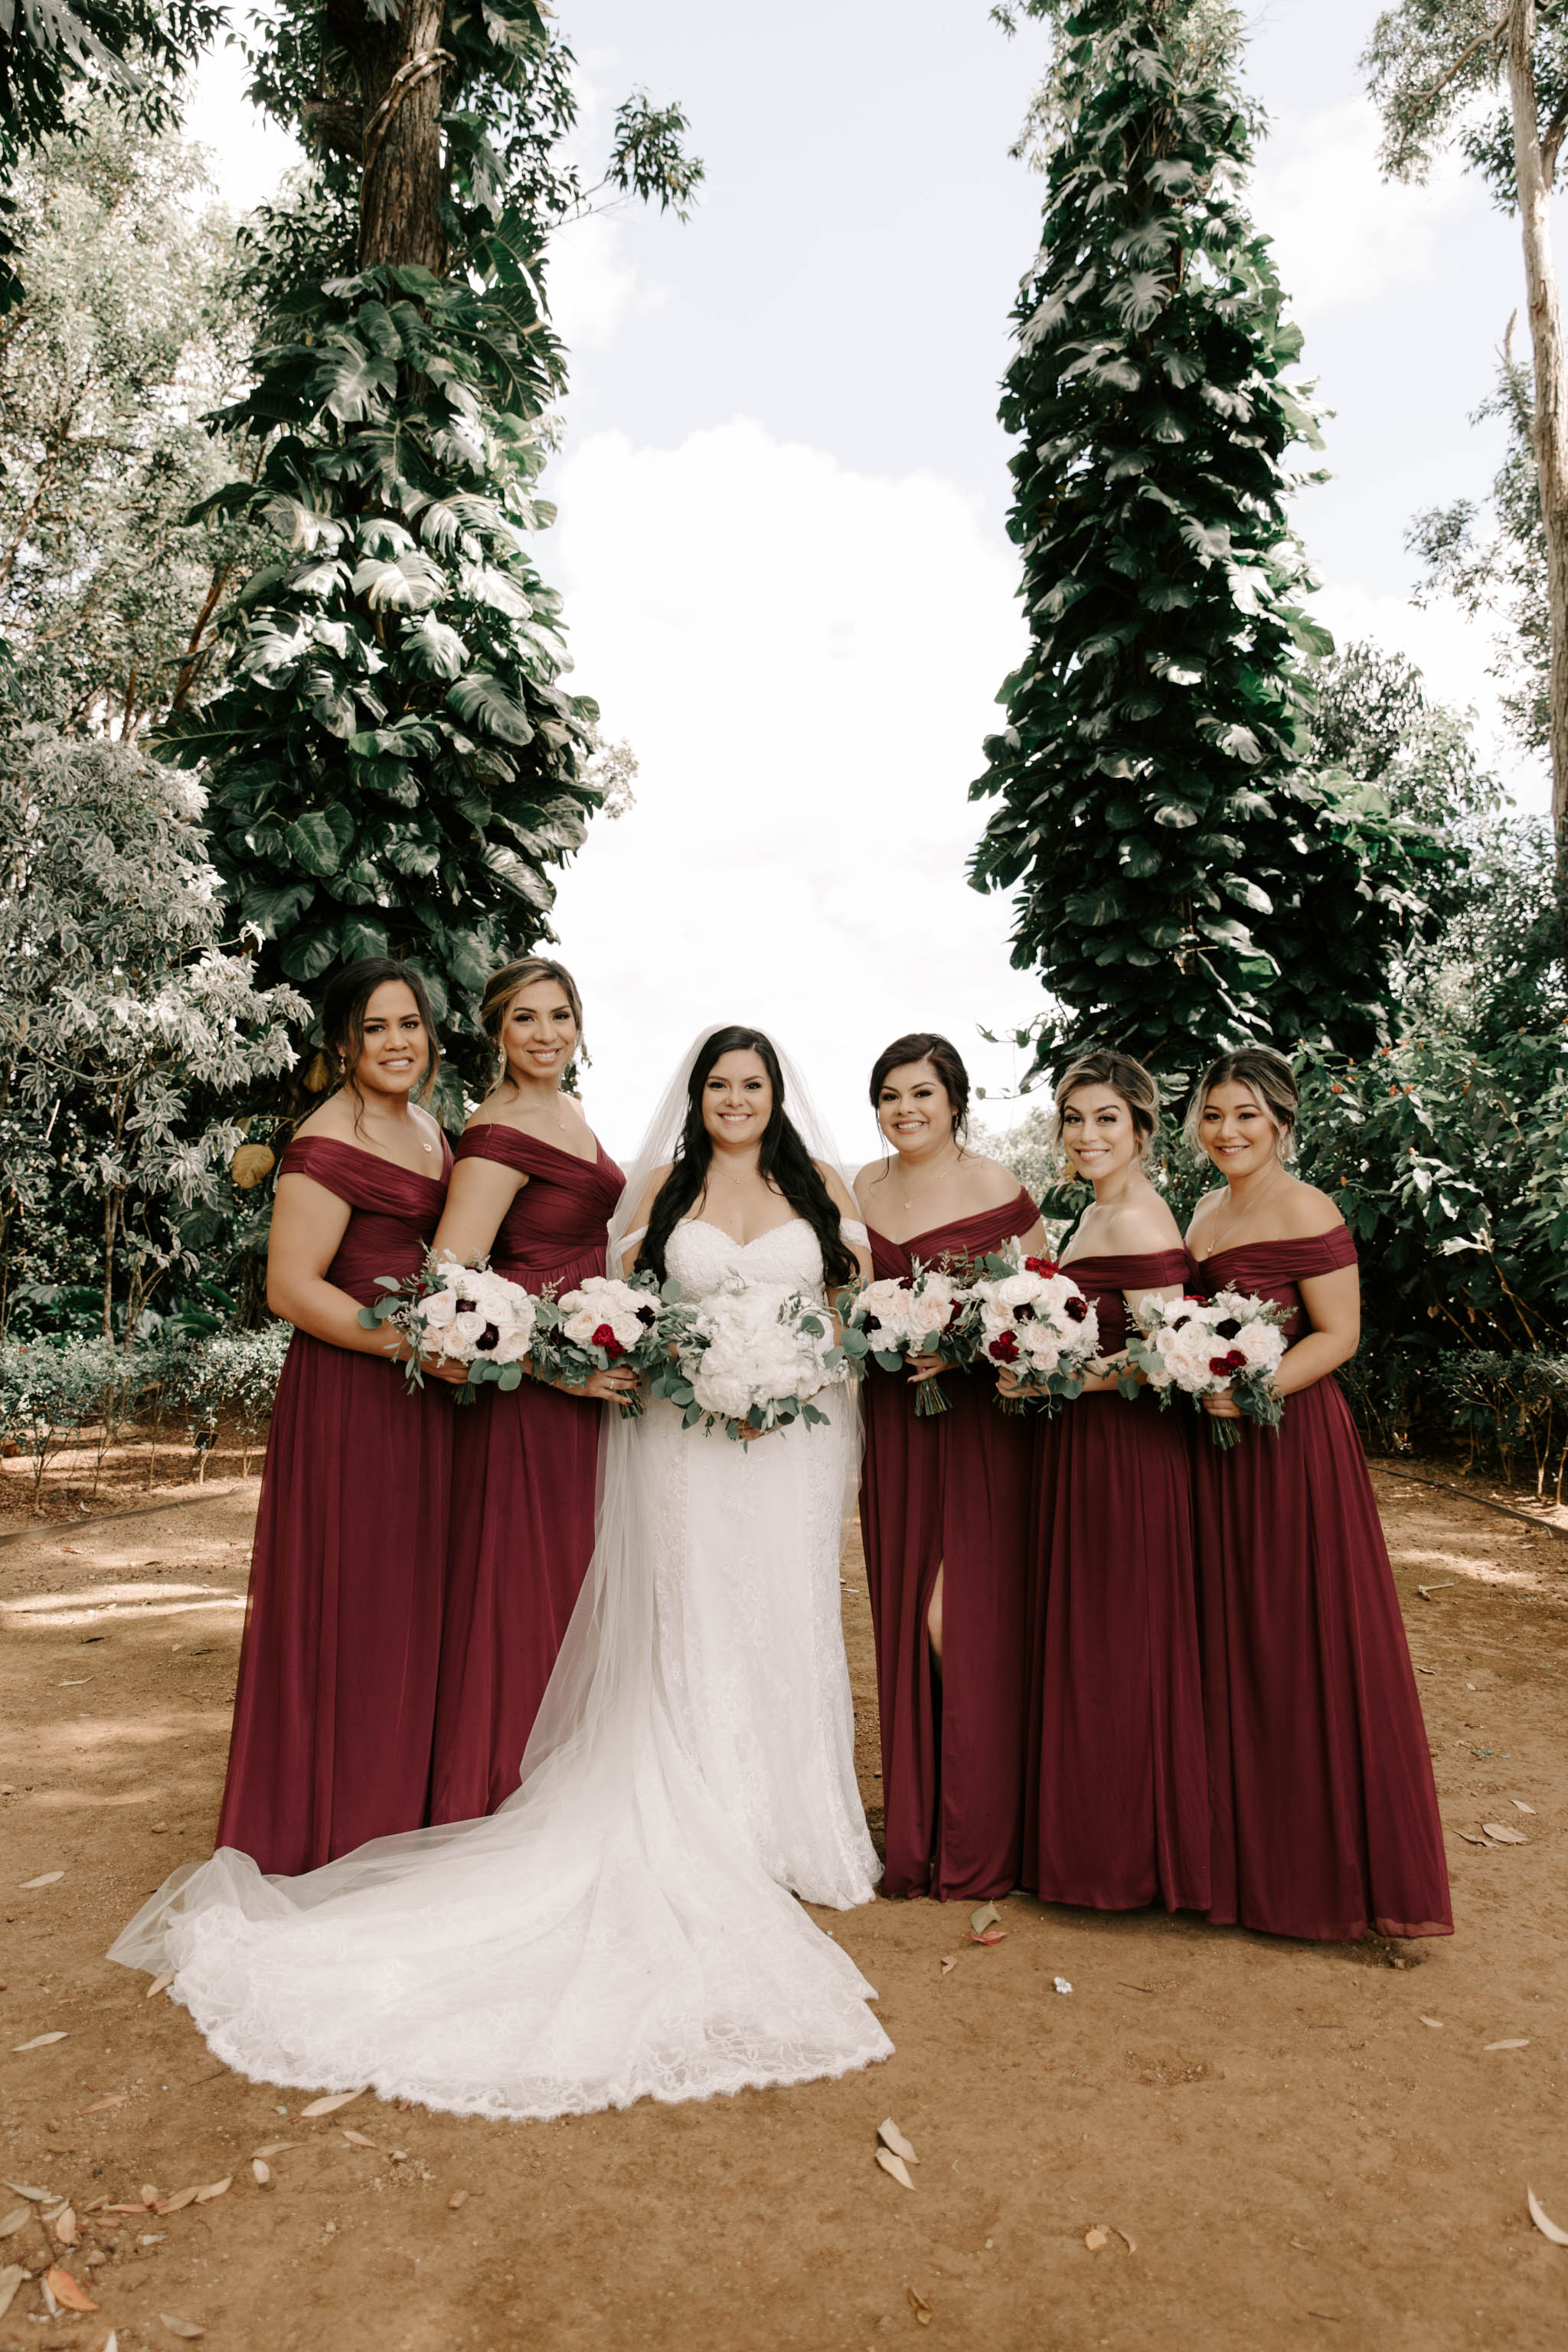 Bride and Bridesmaid Photo - Burgundy Bridesmaid Dresses - Sunset Ranch Hawaii Wedding By Oahu Wedding Photographer Desiree Leilani